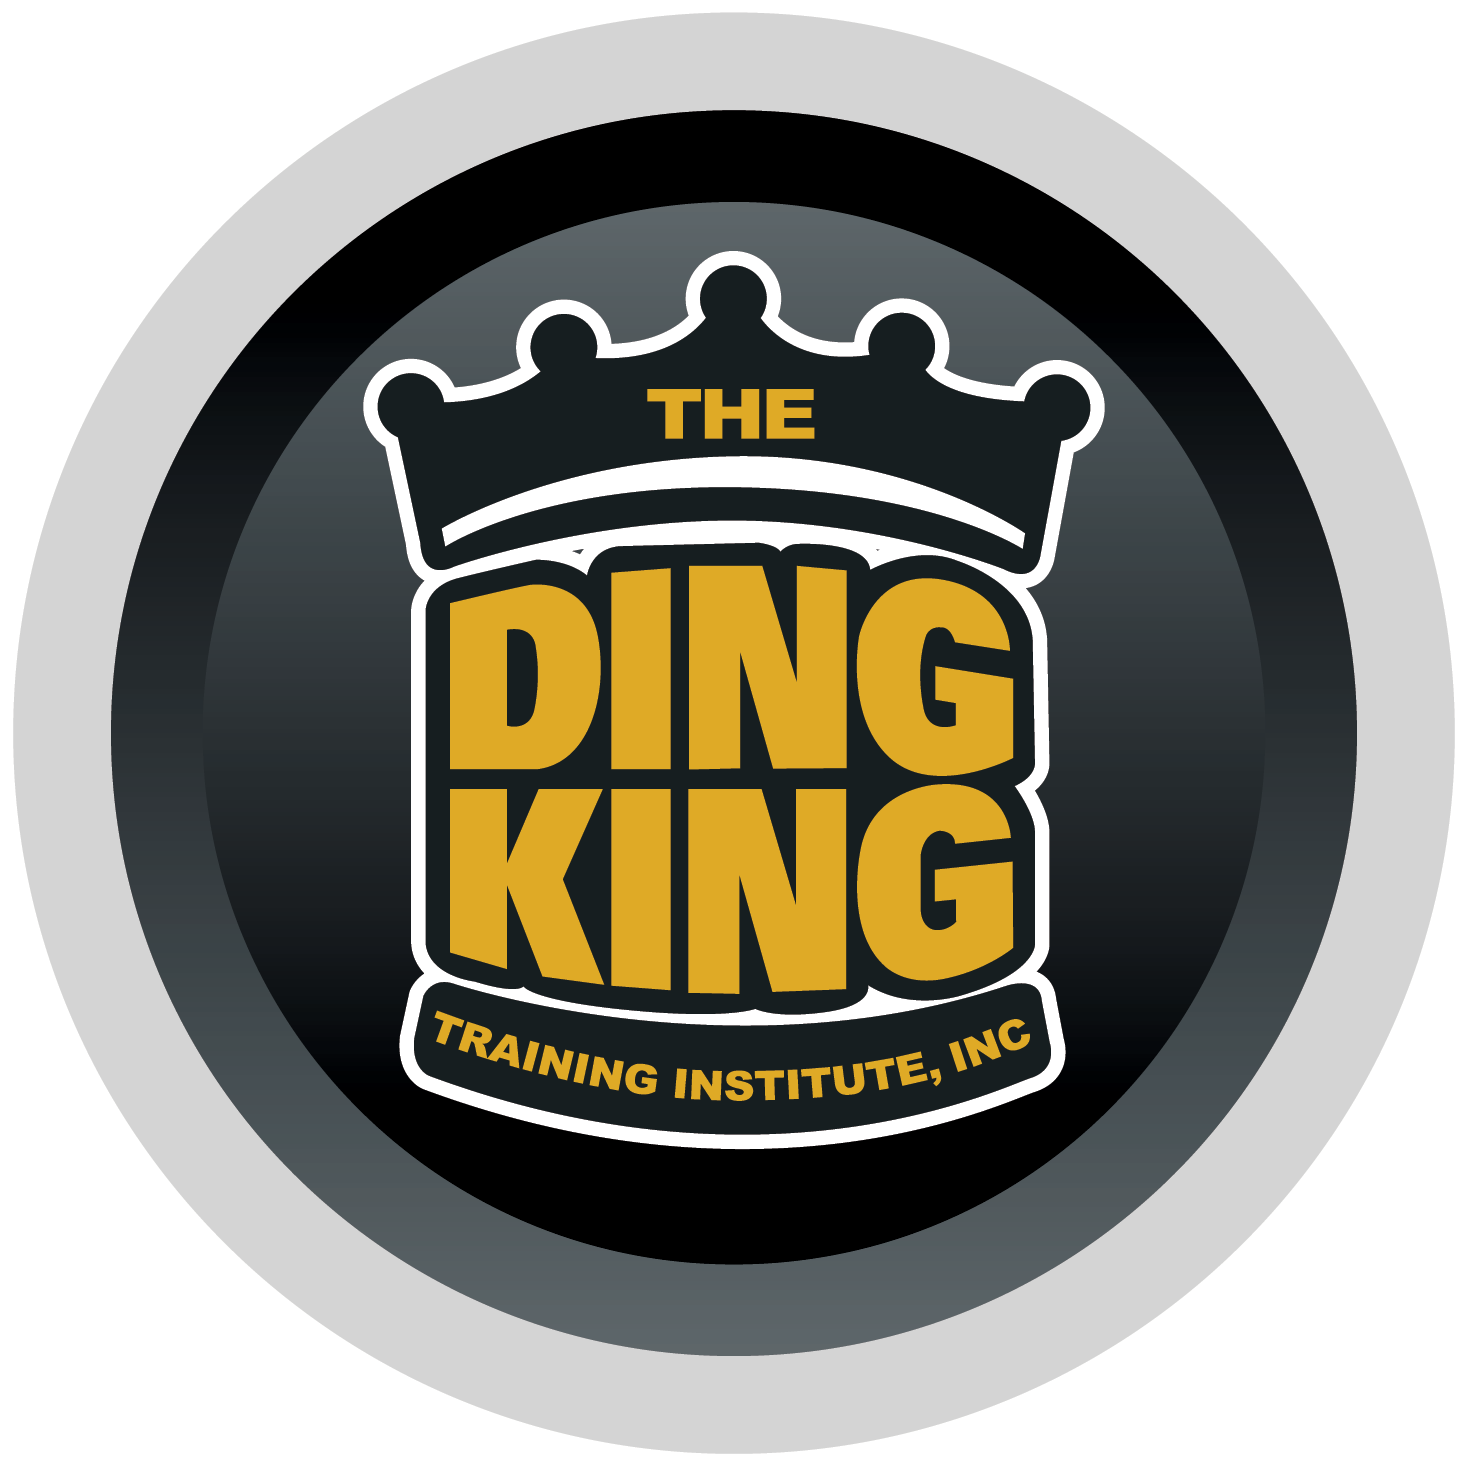 The Ding King Training Institute Inc.